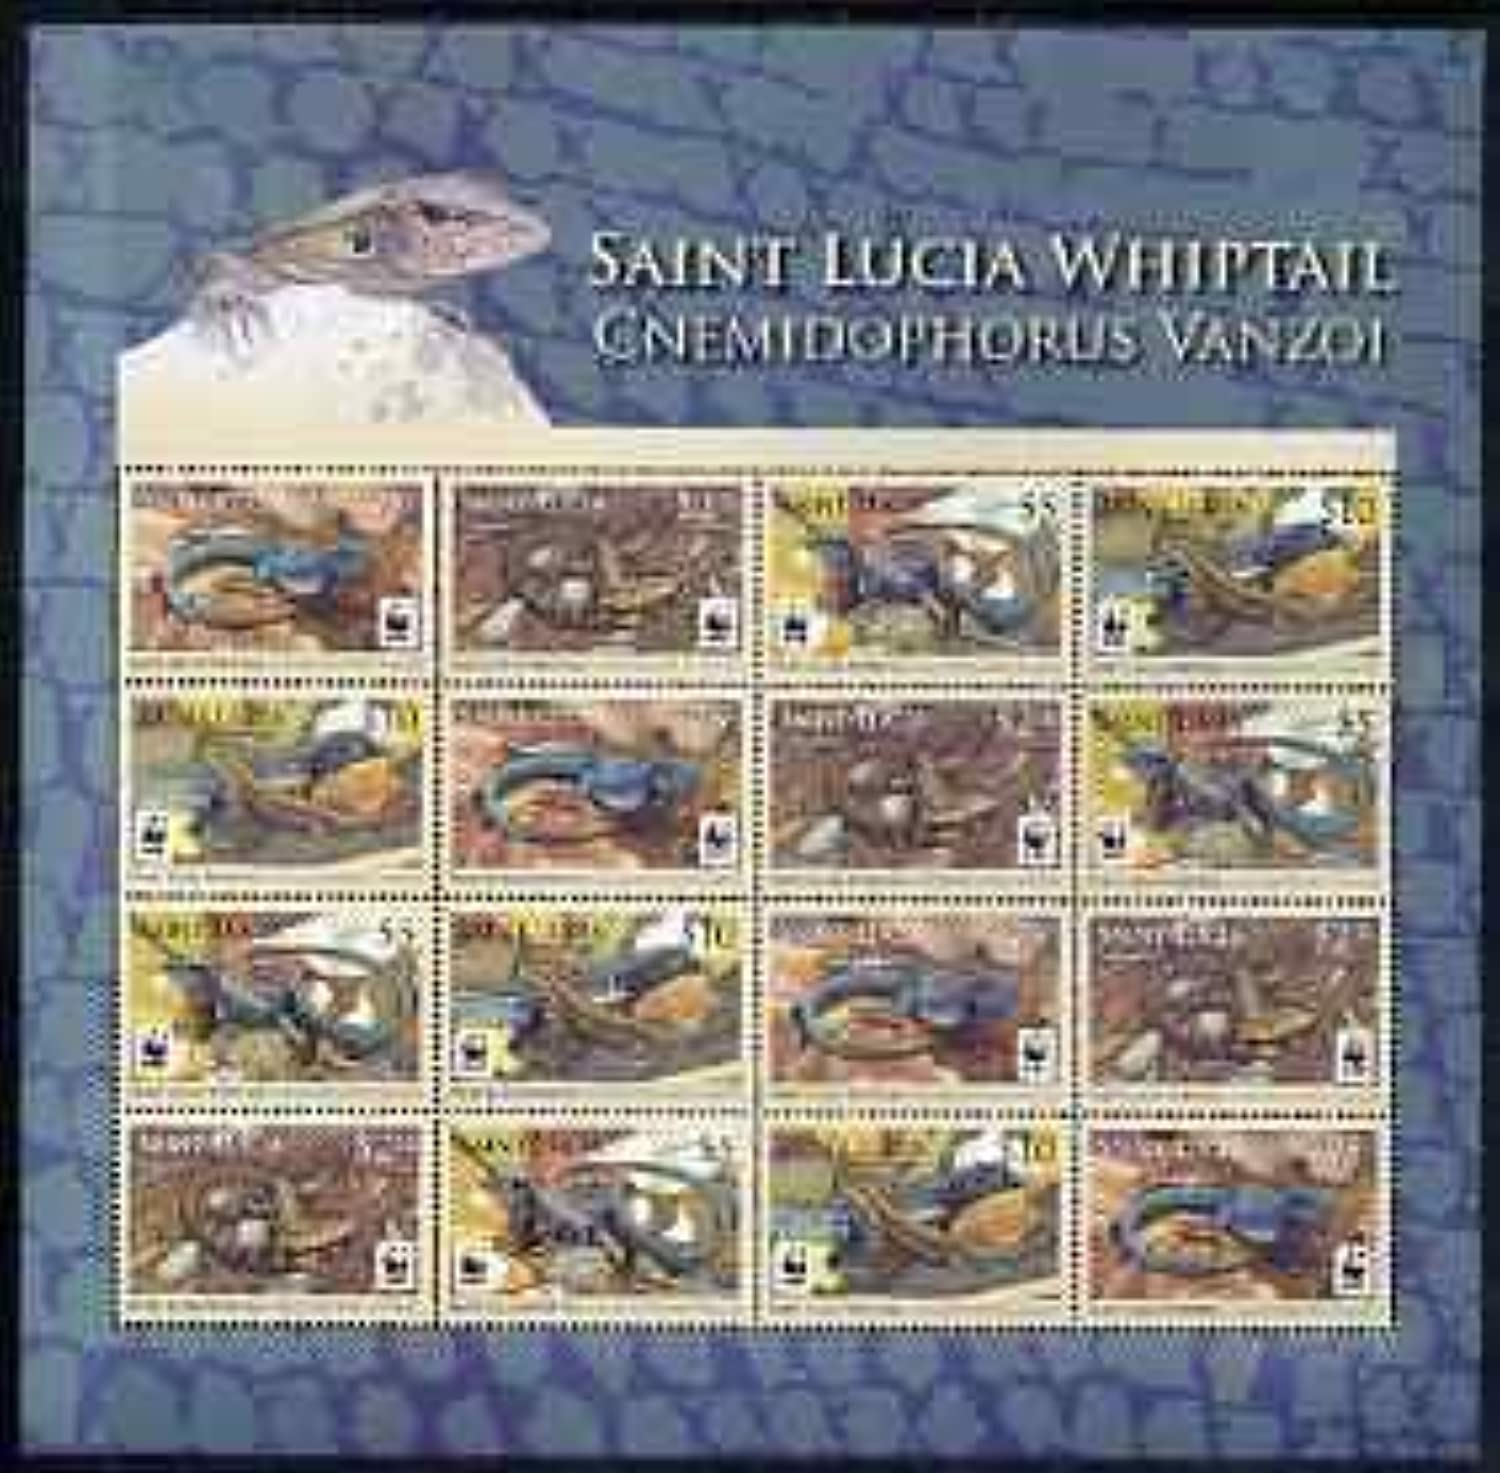 St Lucia 2008 WWF  Whiptail Lizard perf sheetlet 16 Values (4 seTenant Strips of 4) u m Animals Reptiles Lizards JandRStamps